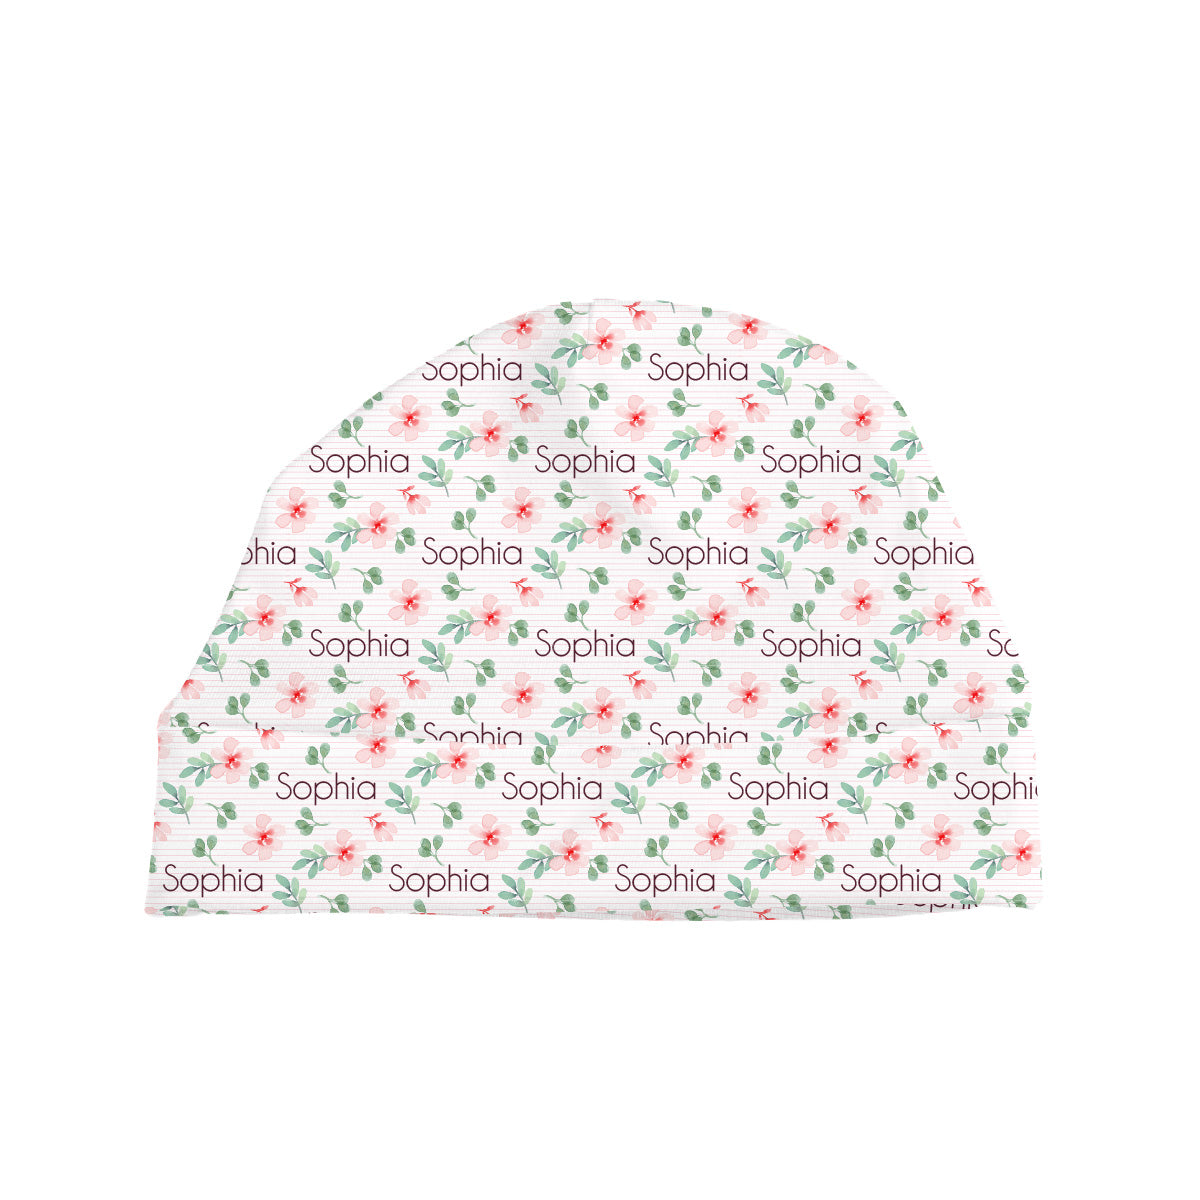 Sophia's Pinstriped Impatiens | Baby Hat